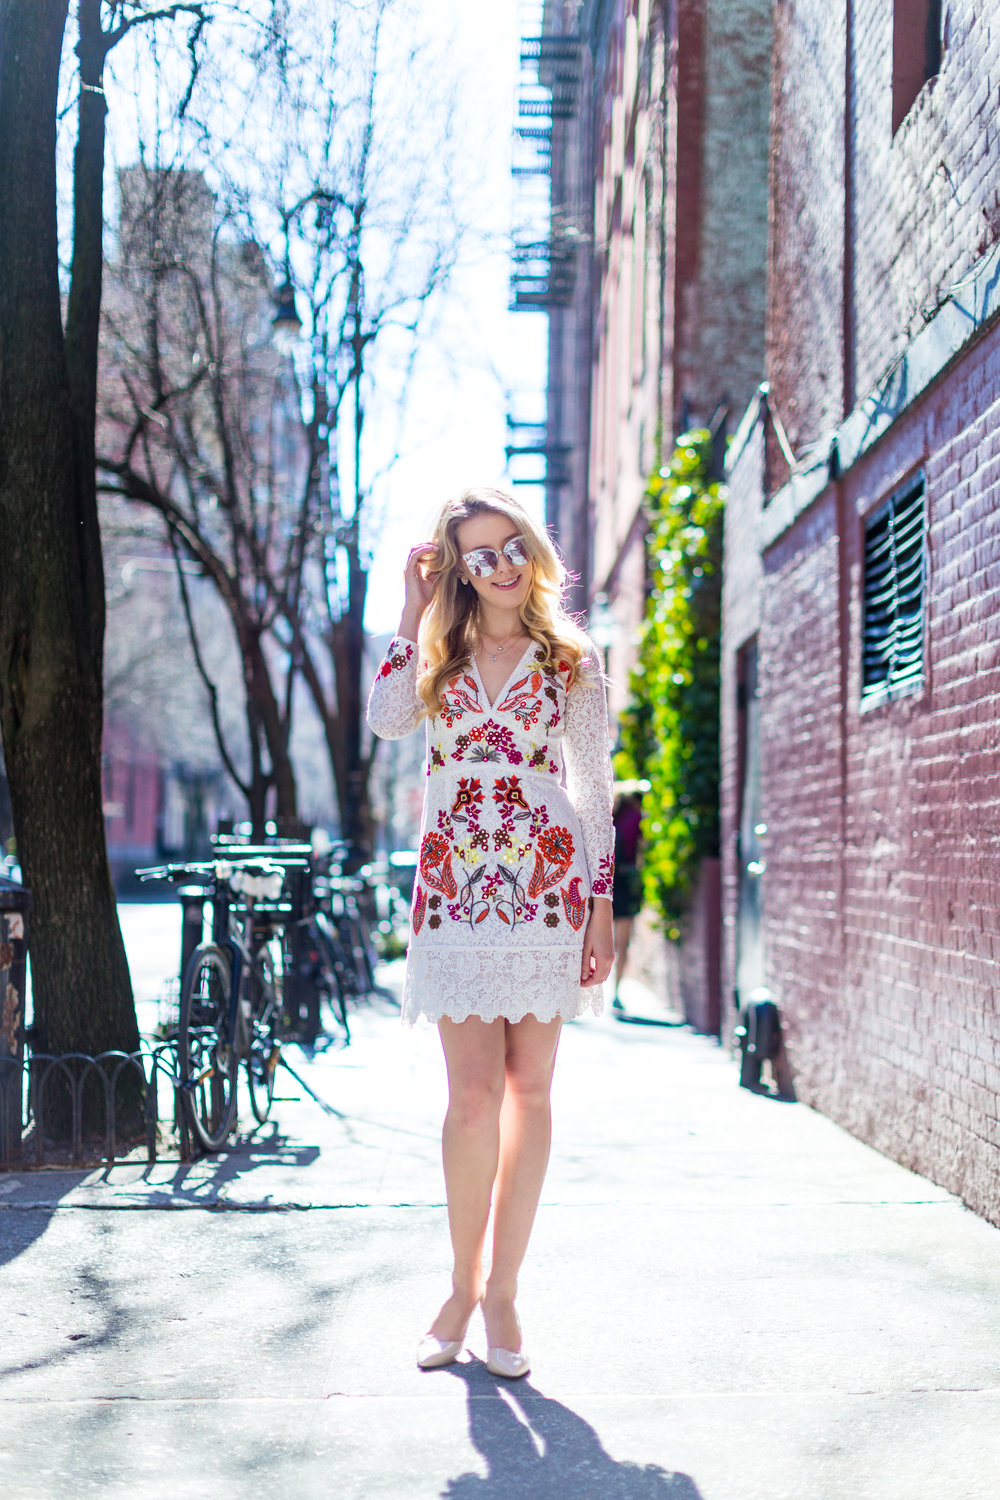 West Village NYC Embroidered Lace Outfit-10.jpg